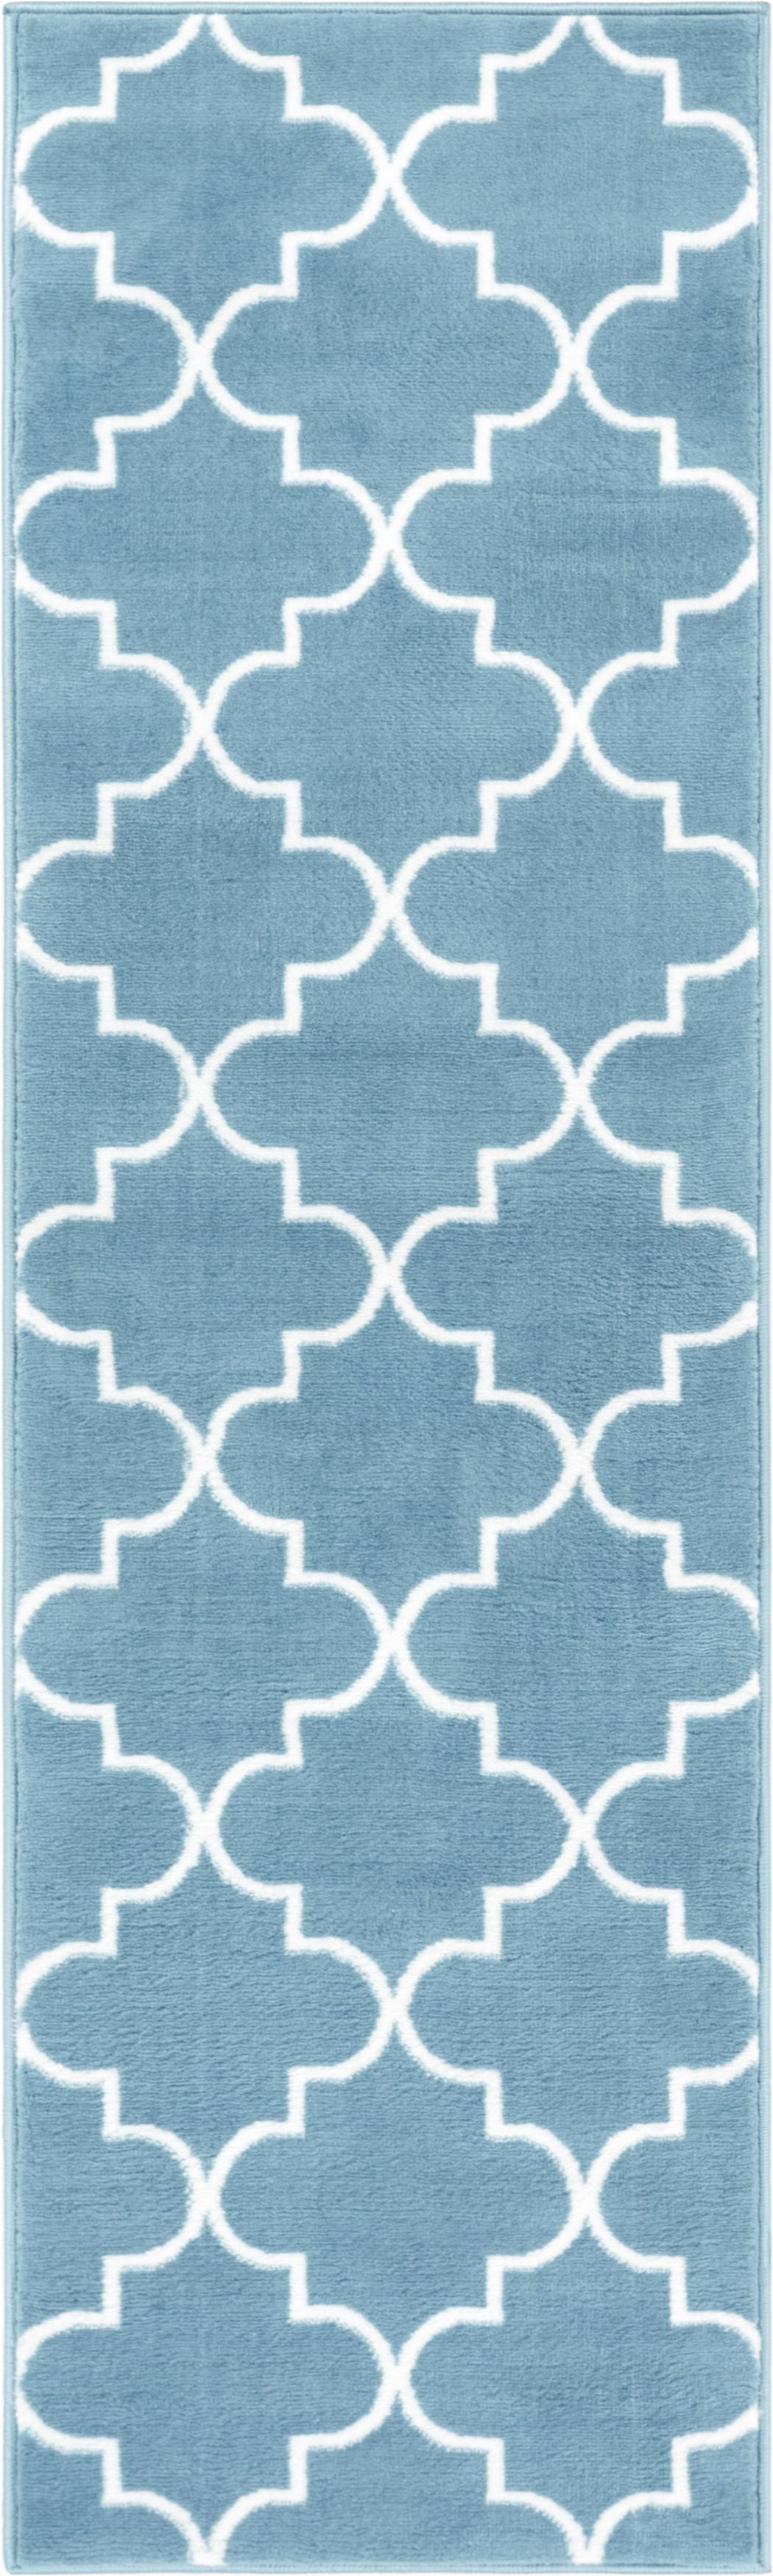 Perfect Geometric Rugs Page 11 - RugLots.com AT64